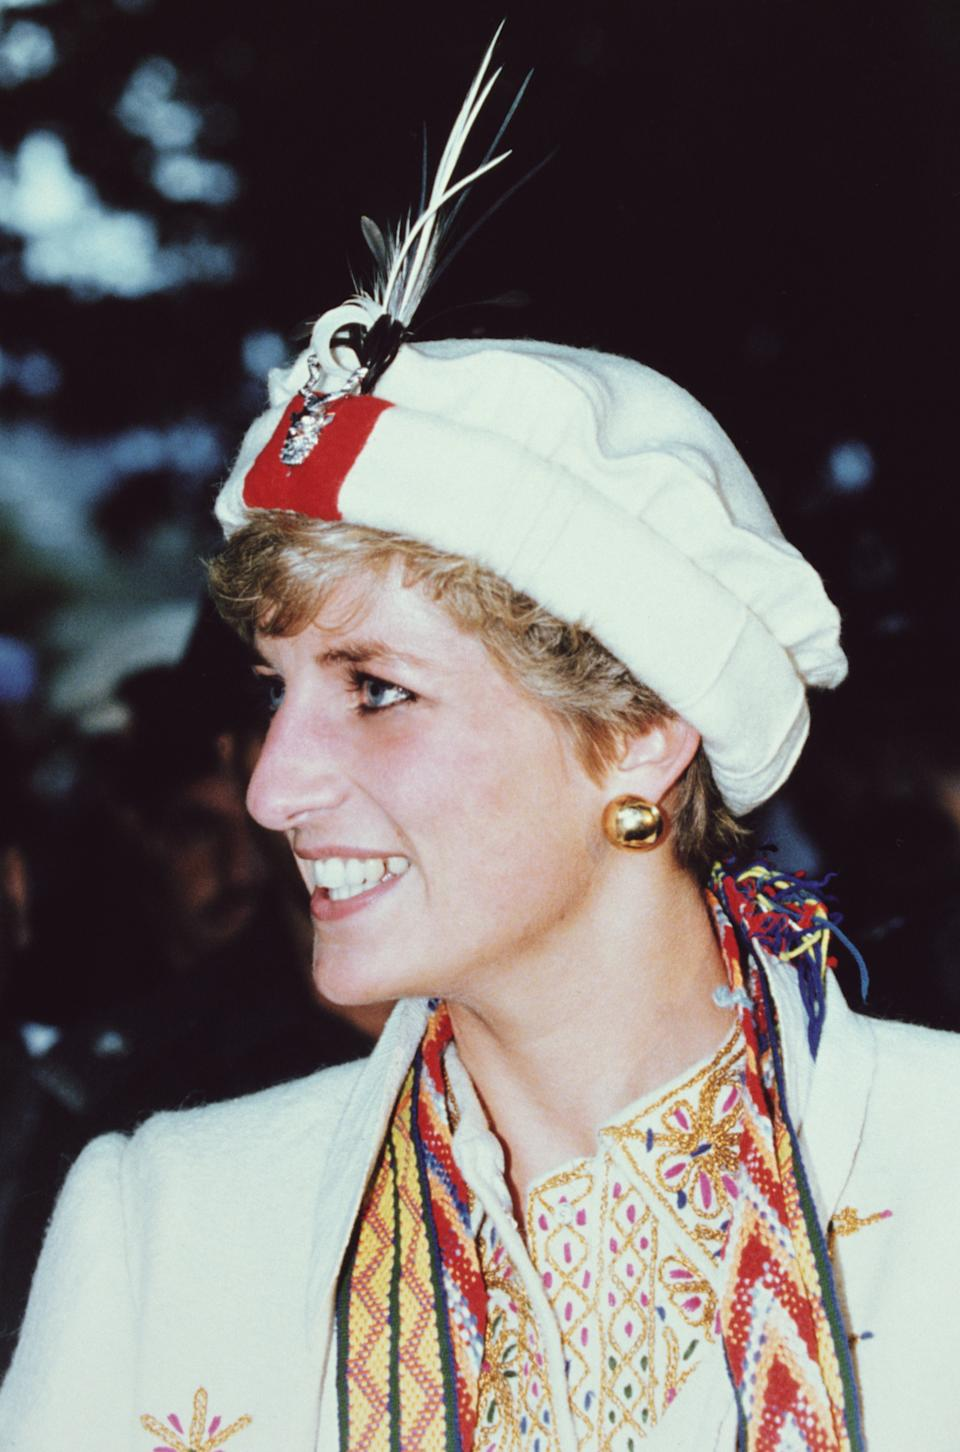 Princess Diana (1961 - 1997) on a visit to the Chitral Scouts, near Peshawar, Pakistan, September 1991. (Photo by Jayne Fincher/Princess Diana Archive/Getty Images)